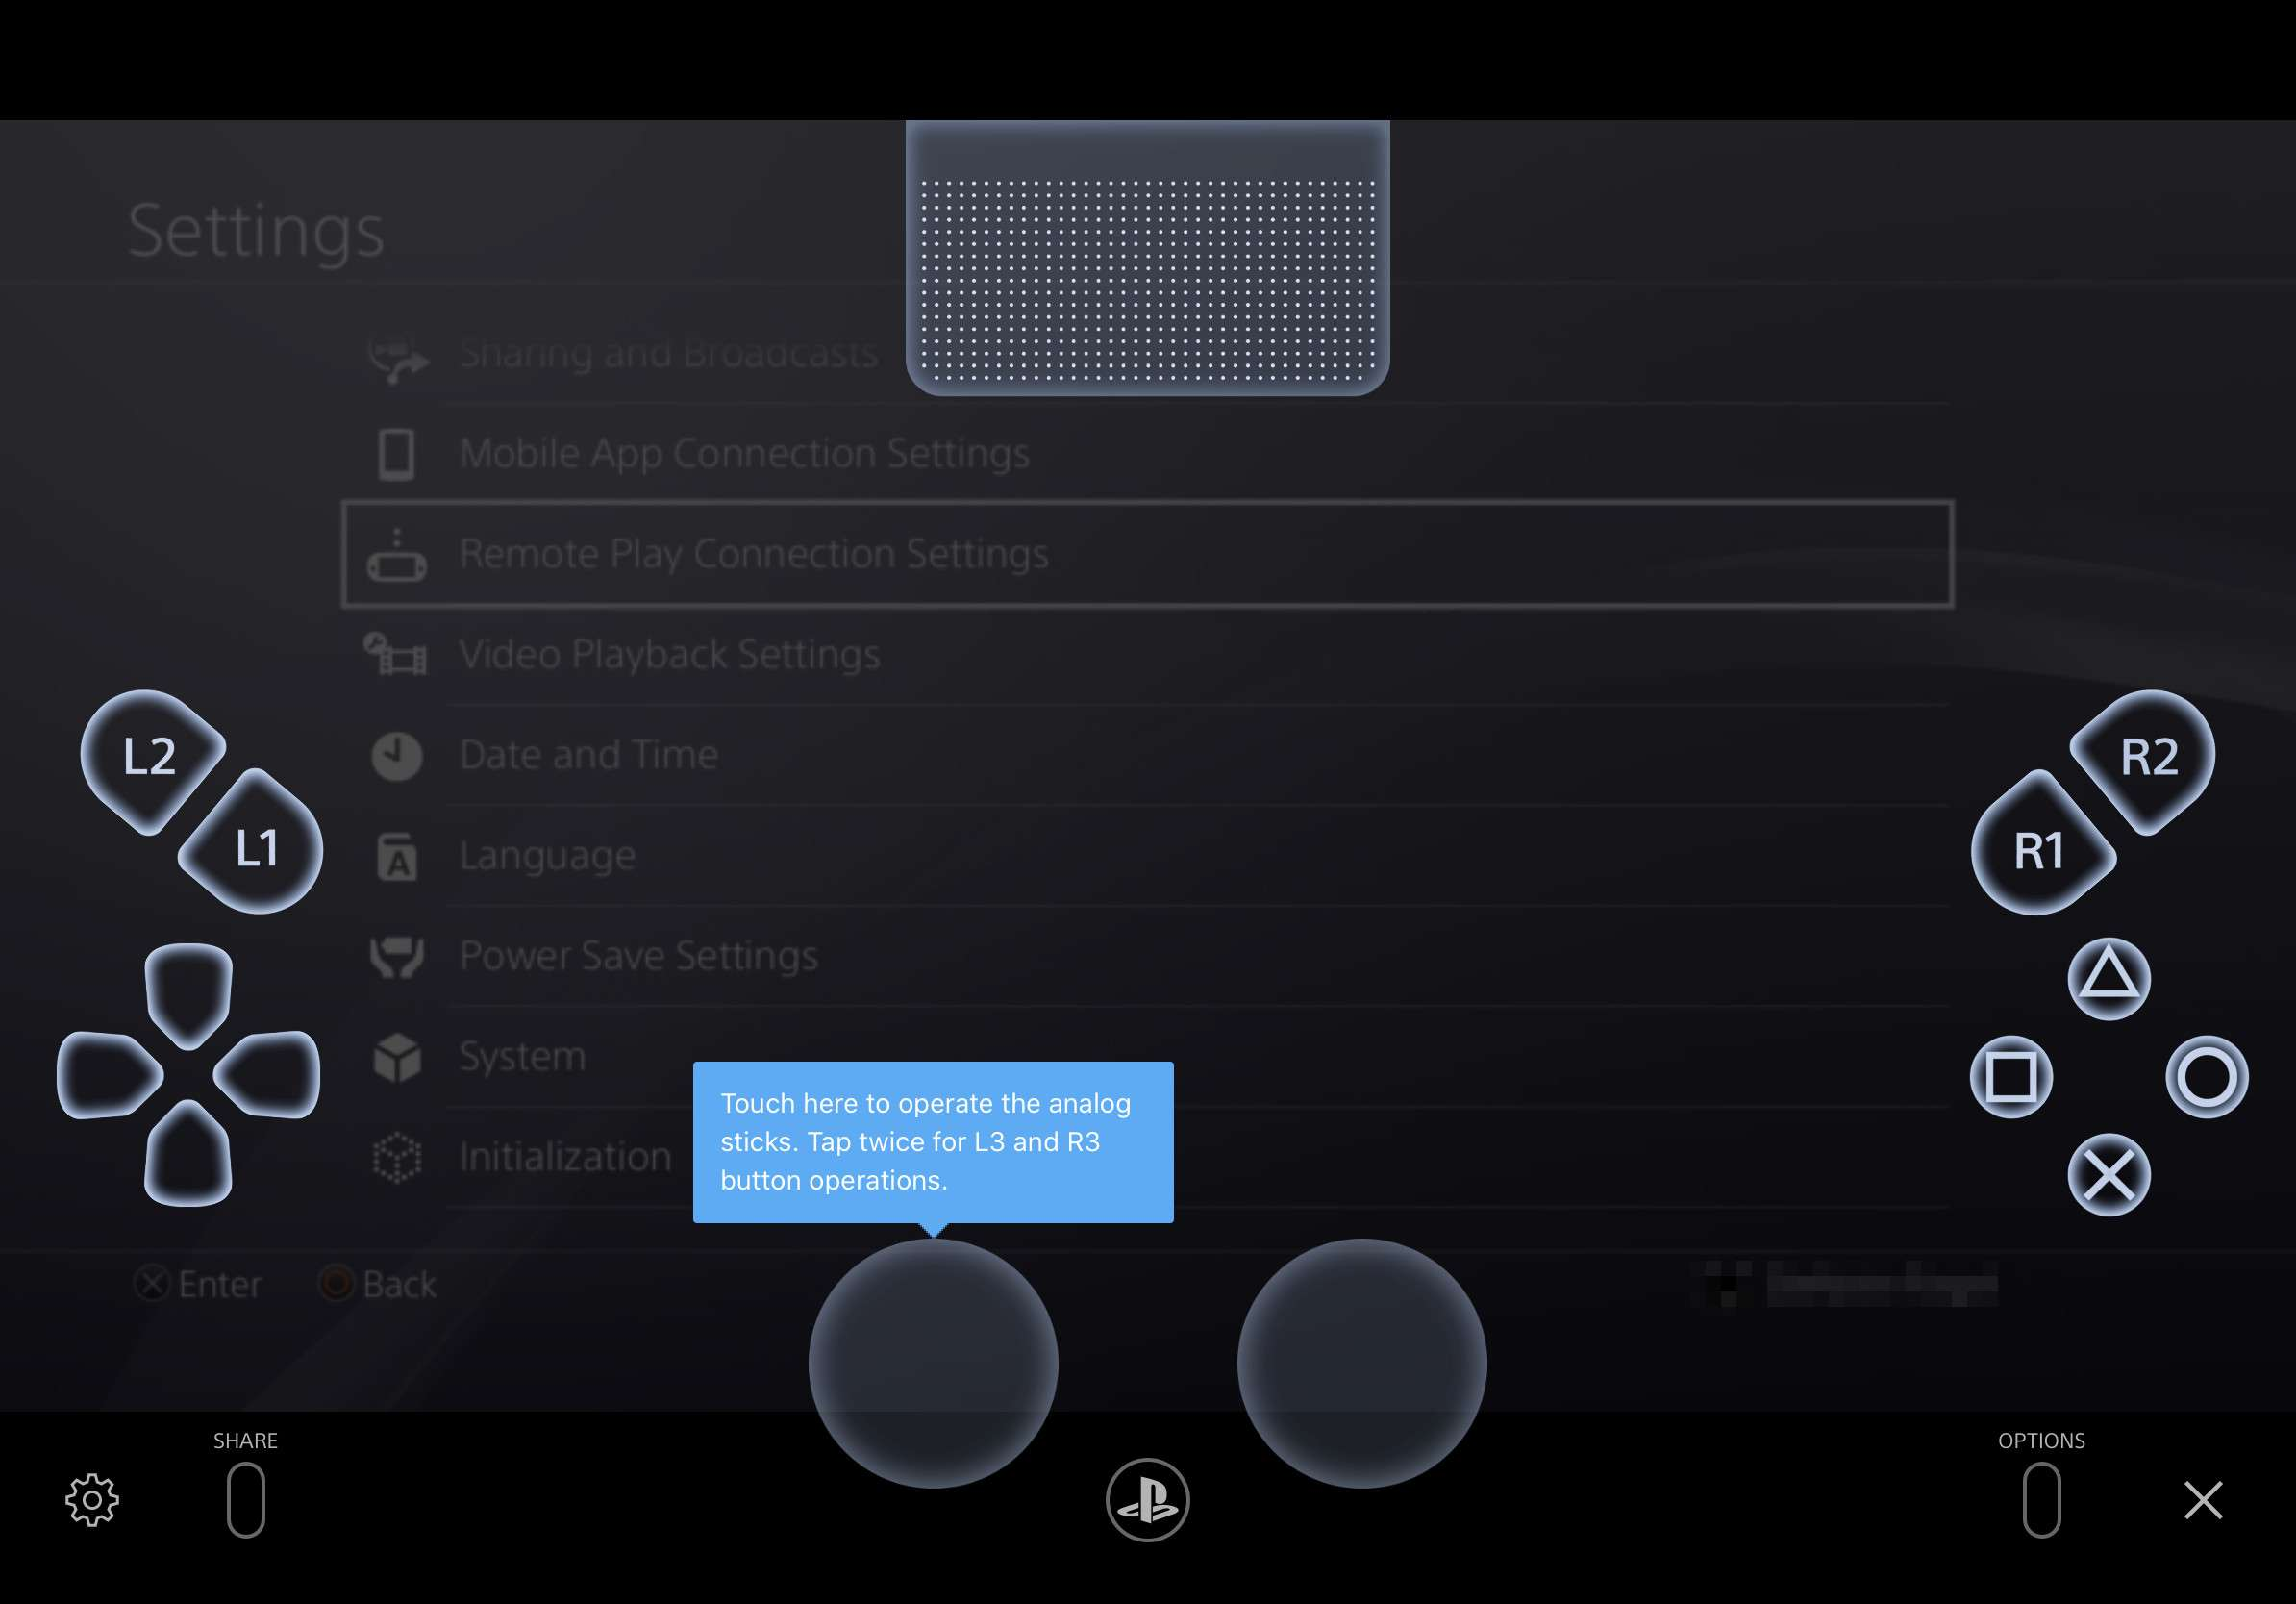 A digital approximation of the Dualshock controller appears in the PS4 Remote Play app